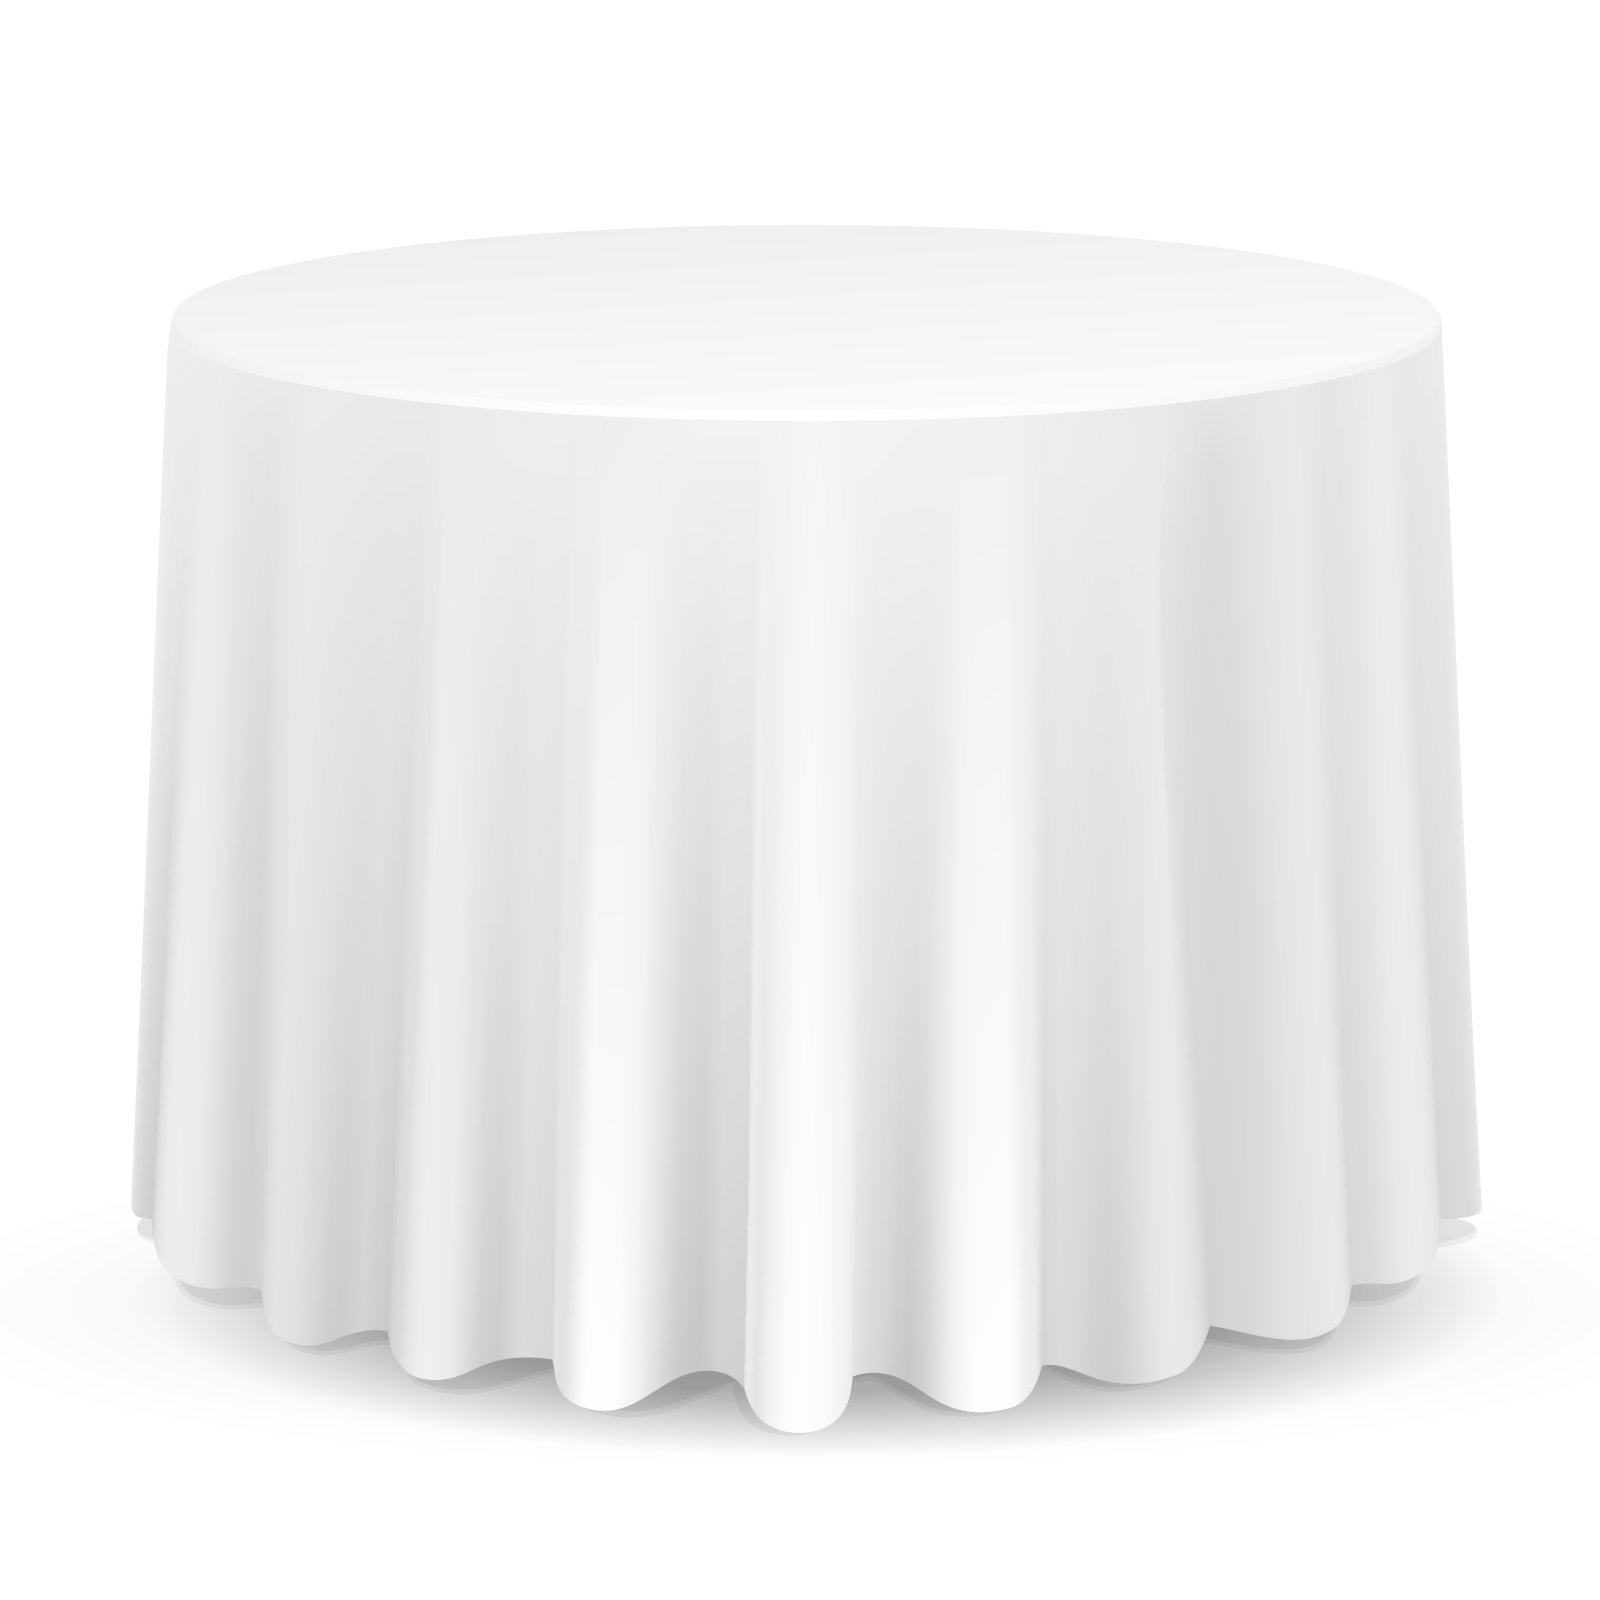 Lann's Linens - 10 Premium 120'' Round Tablecloths for Wedding / Banquet / Restaurant - Polyester Fabric Table Cloths - White